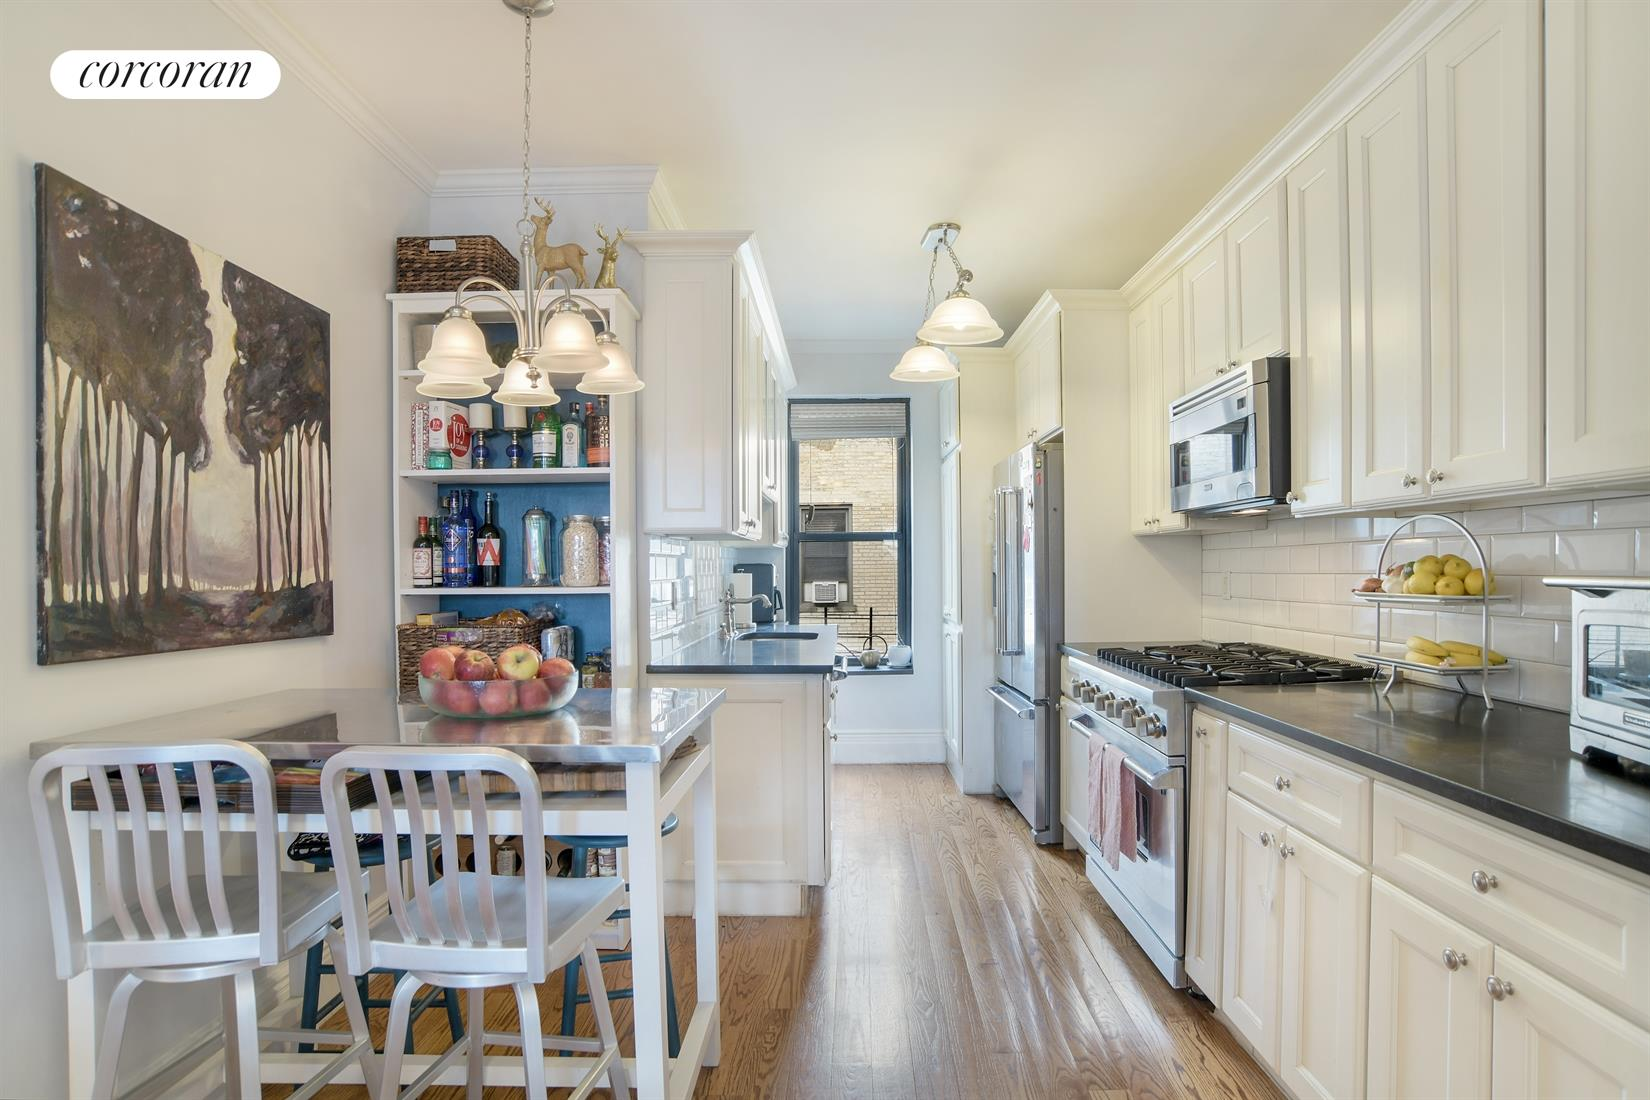 Corcoran, 125 Eastern Parkway, Apt. 6CK, Prospect Heights Real ...